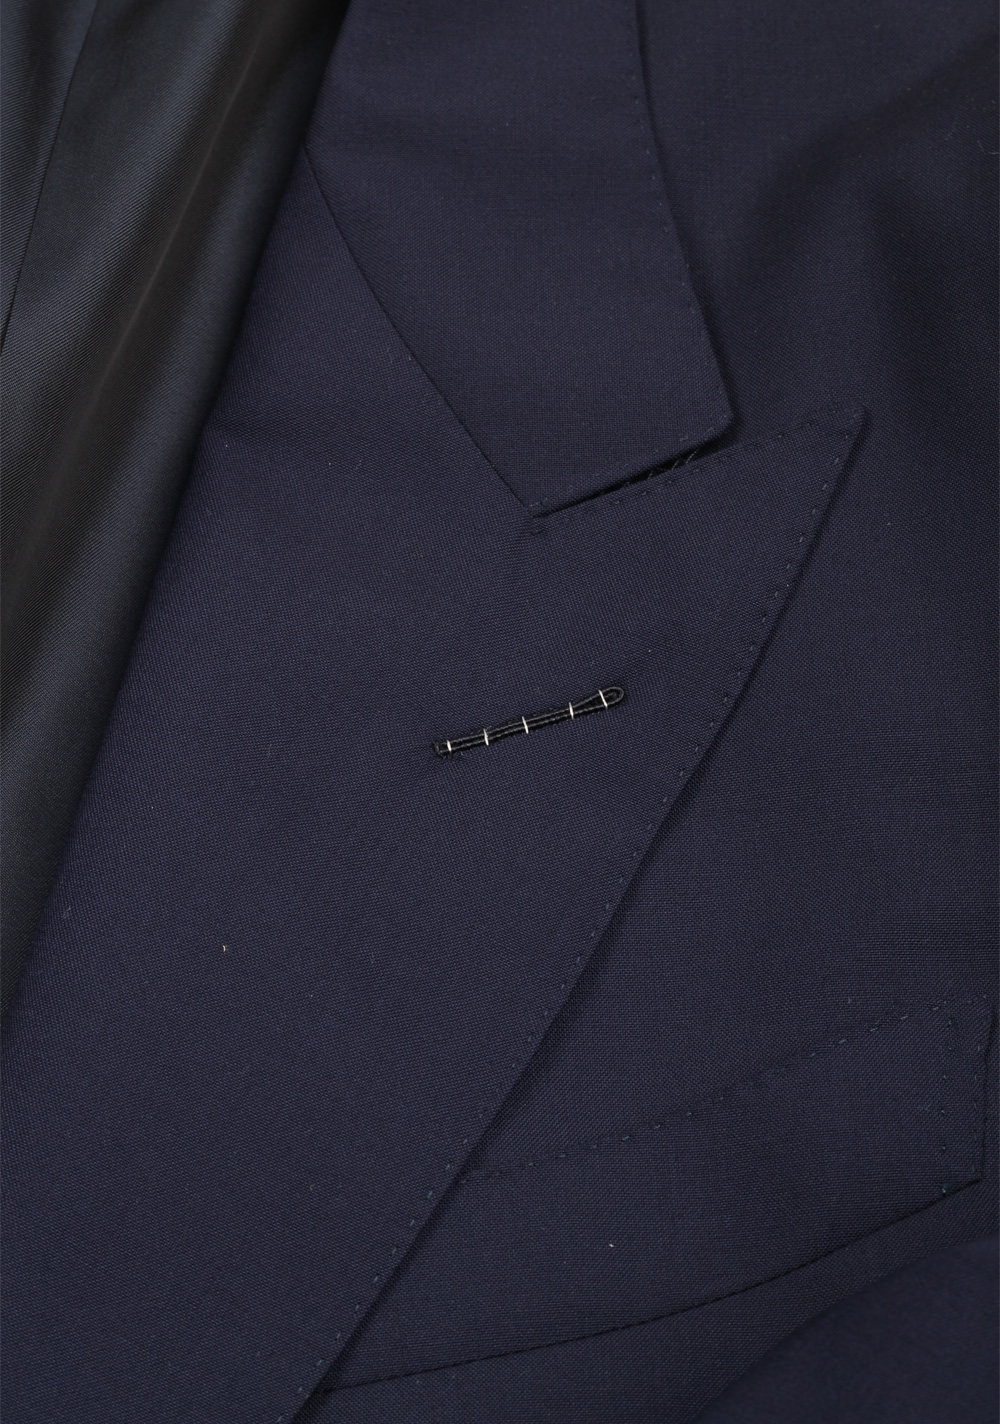 TOM FORD Shelton Solid Blue Suit | Costume Limité